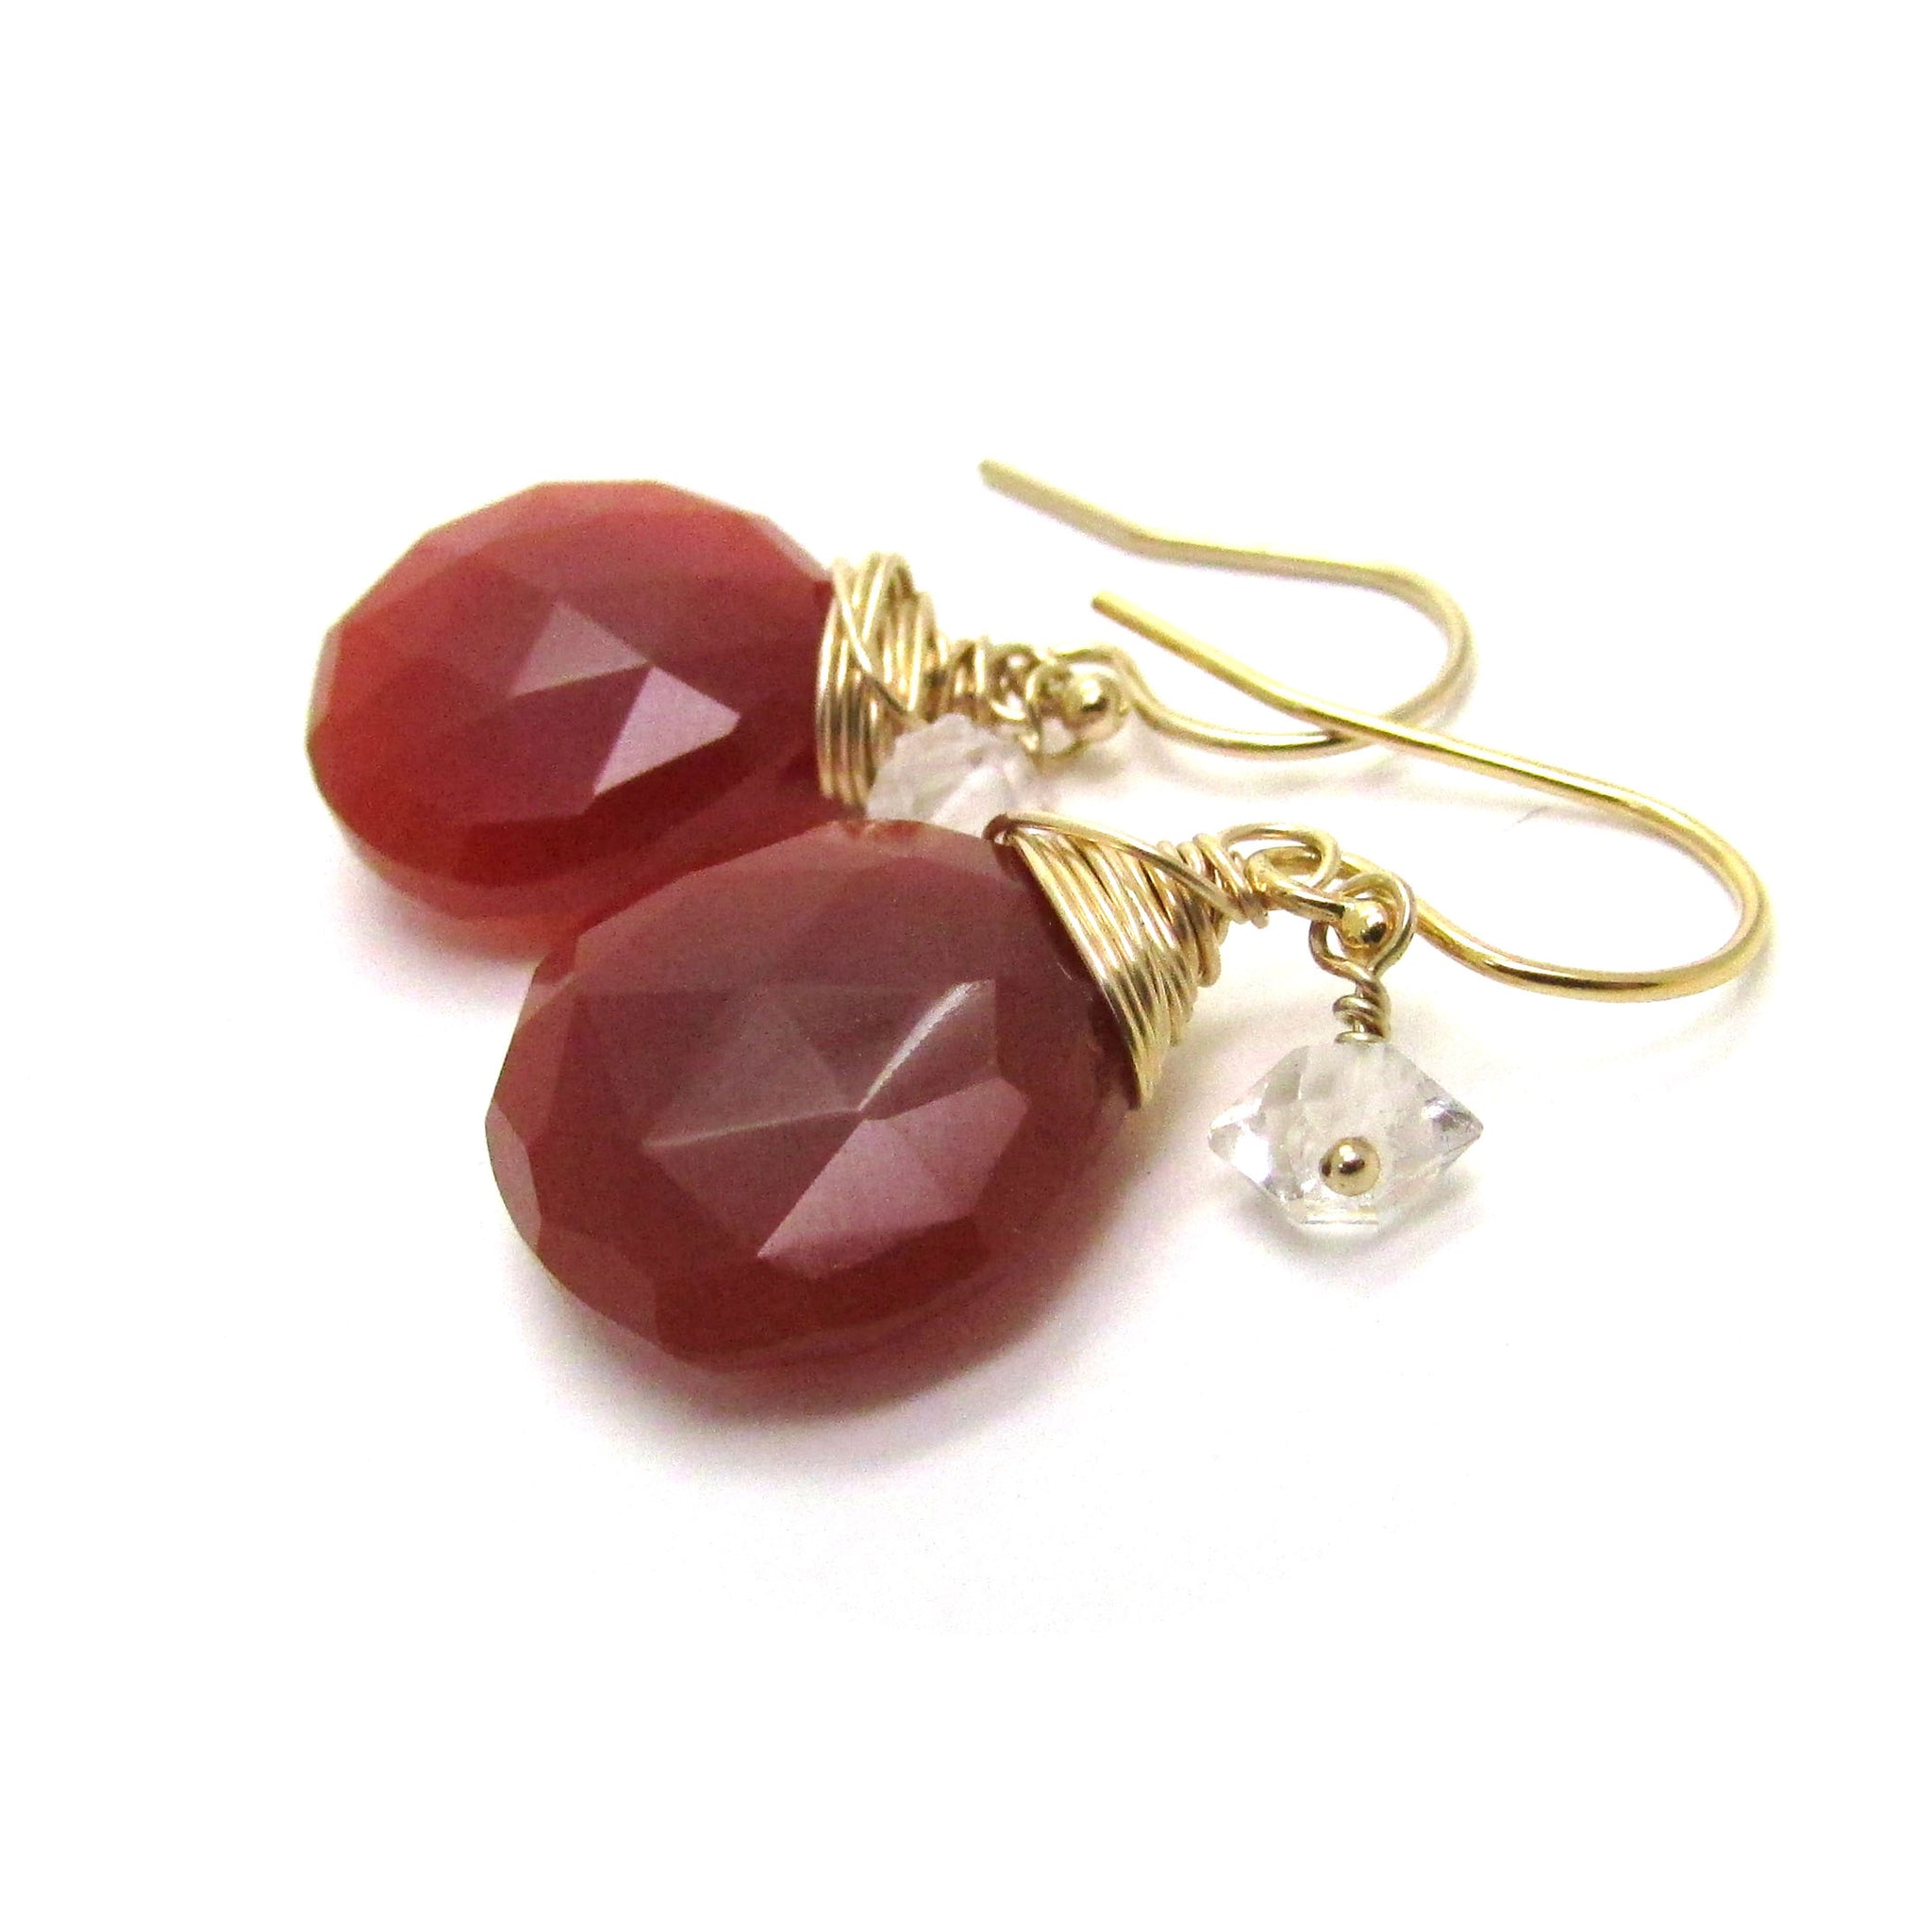 jewelry cartier carnelian yellow earrings gold diamond and